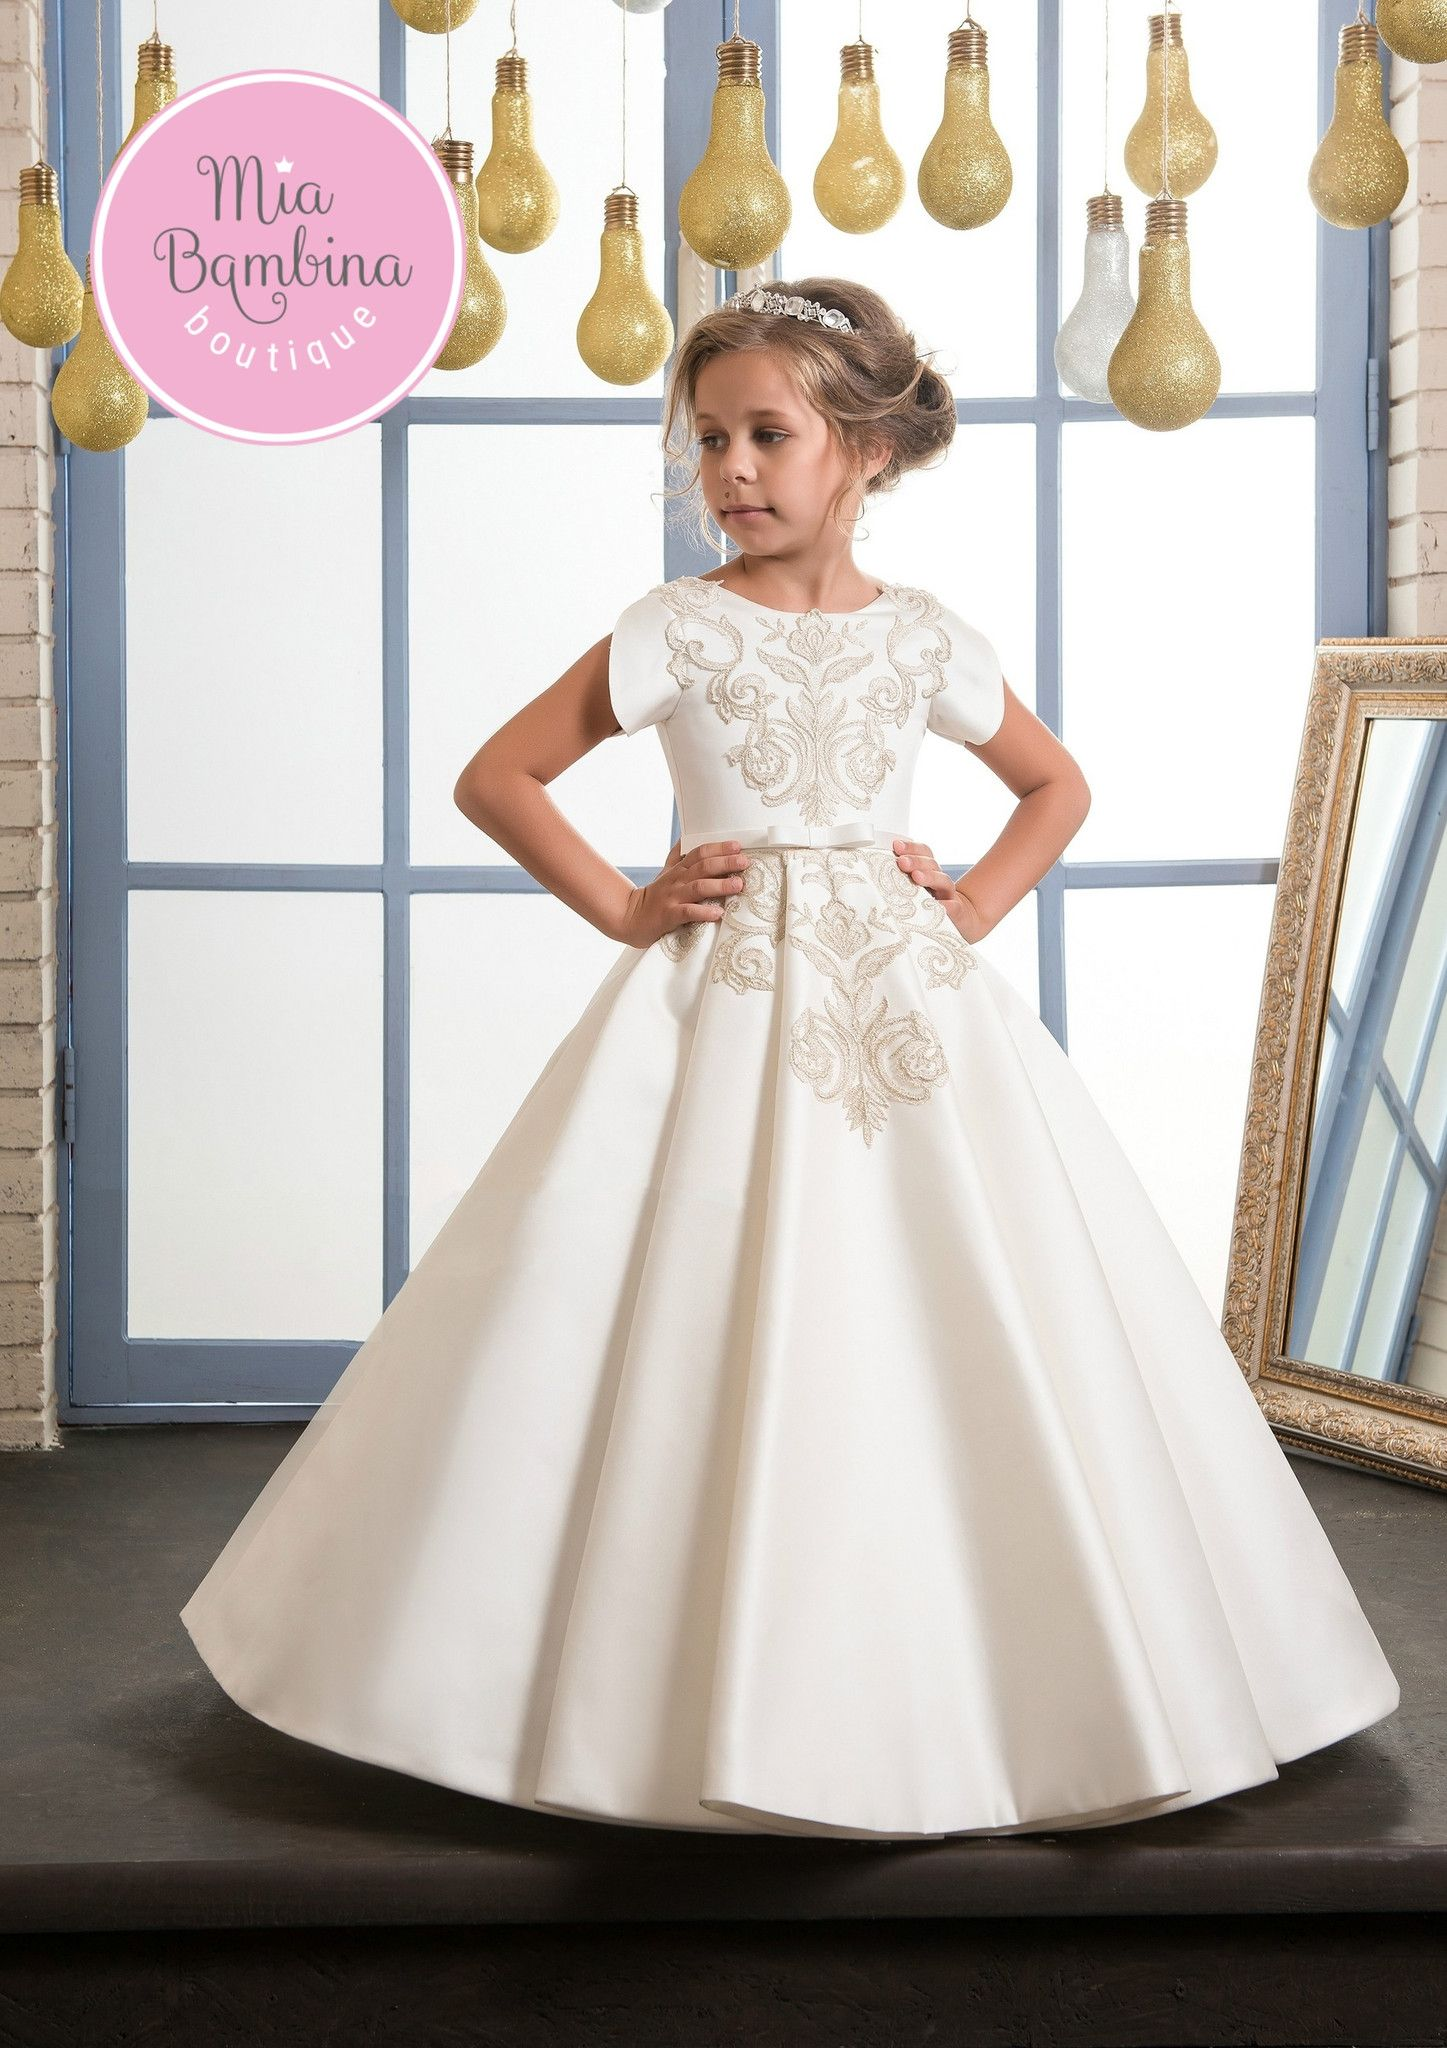 Optional Le Display Robes Tutu S Pageant Dresses Toddler Dress Childrens Wedding